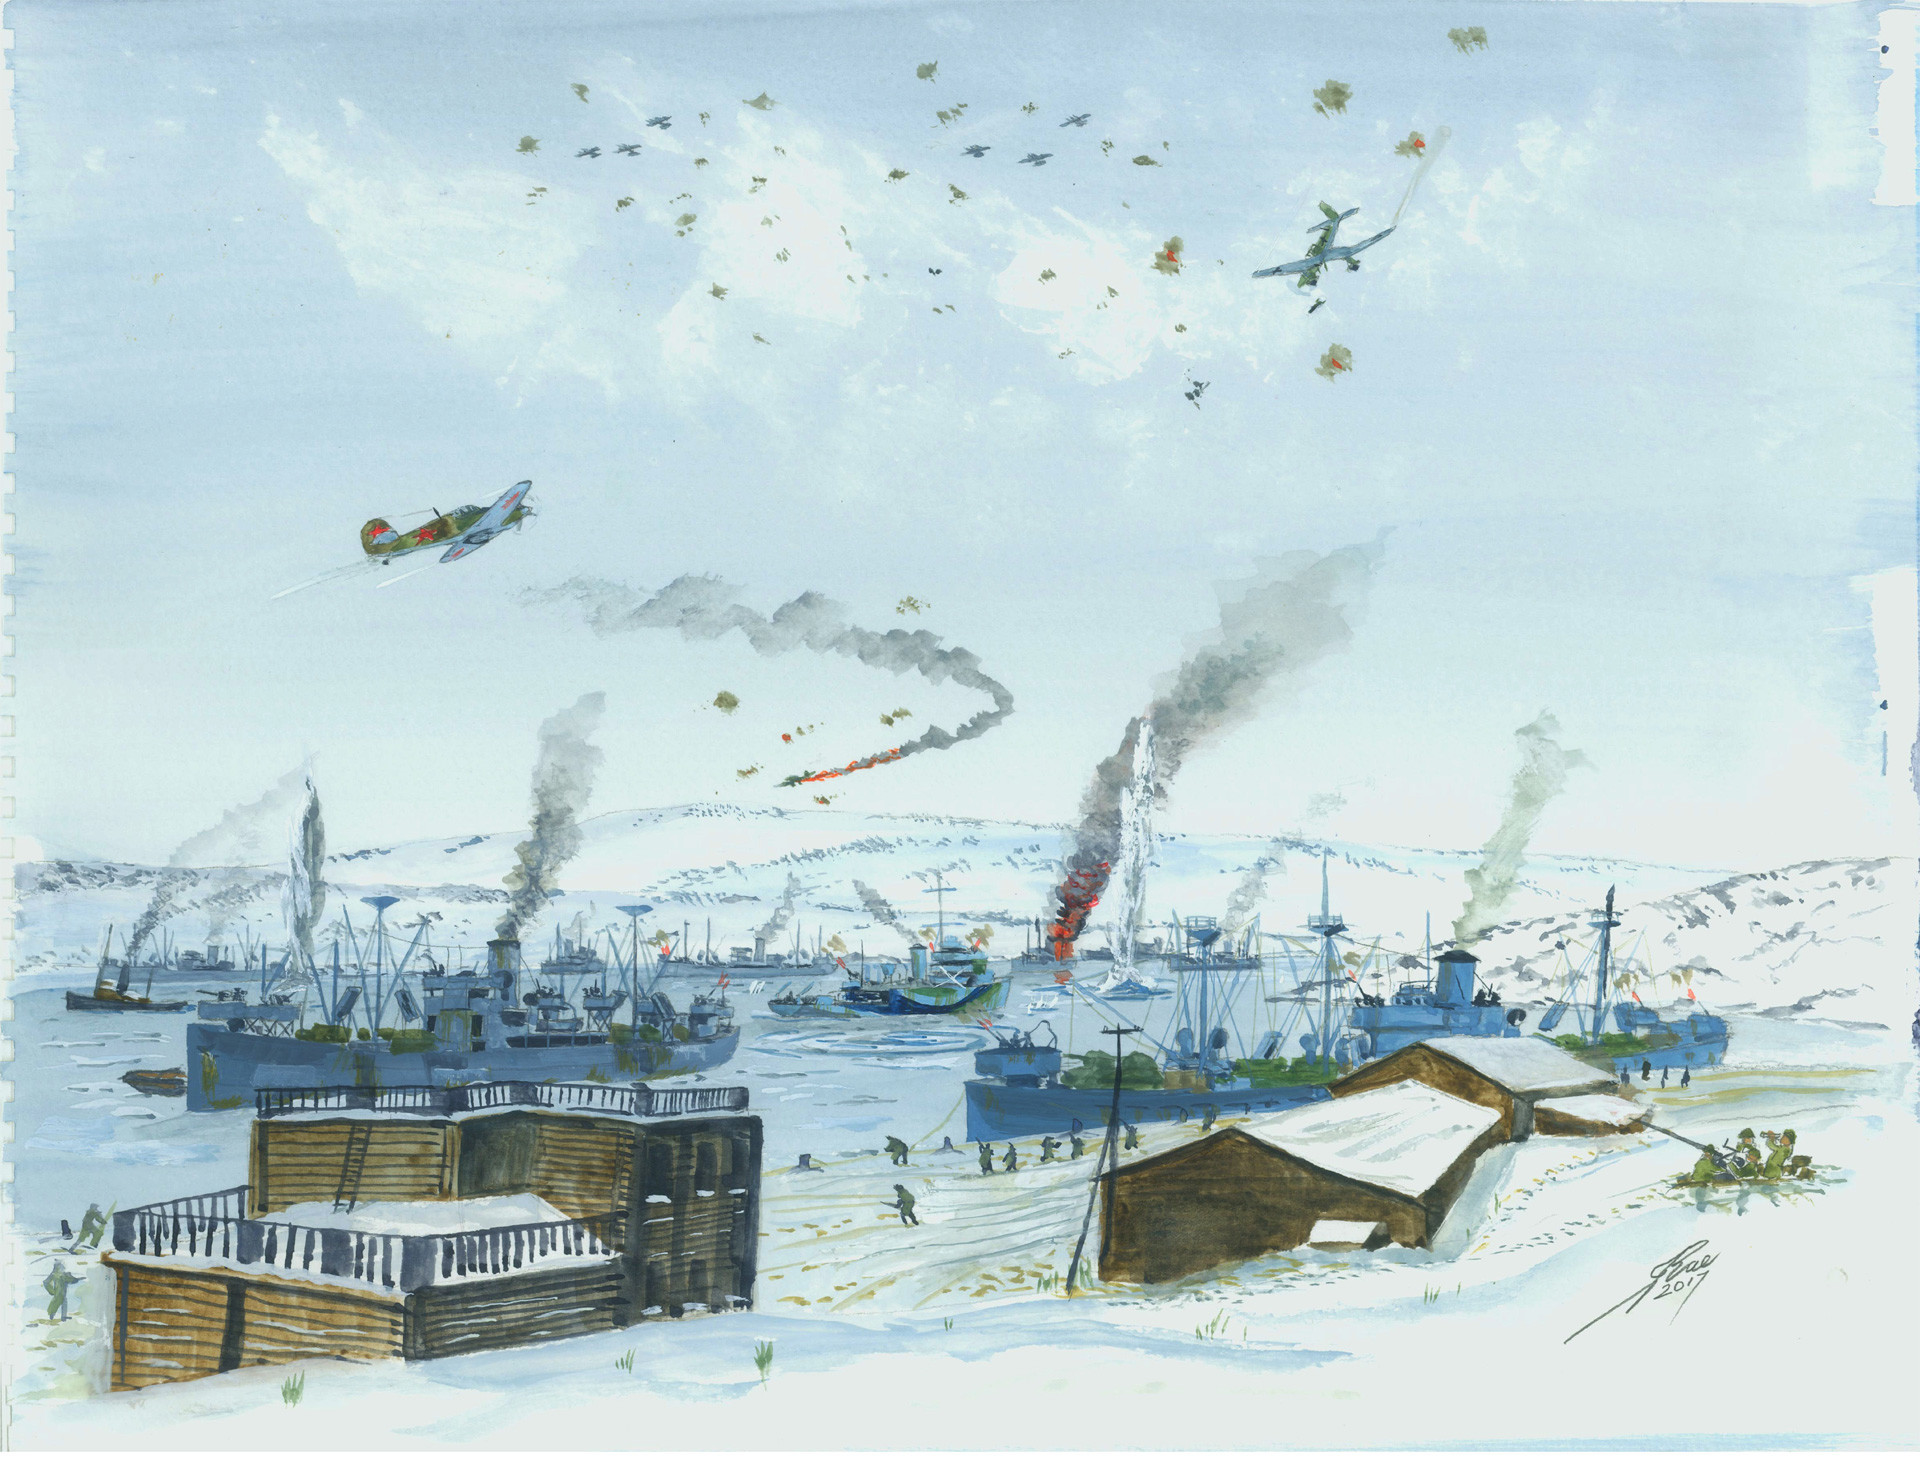 German Stukas attack convoy at Murmansk docks